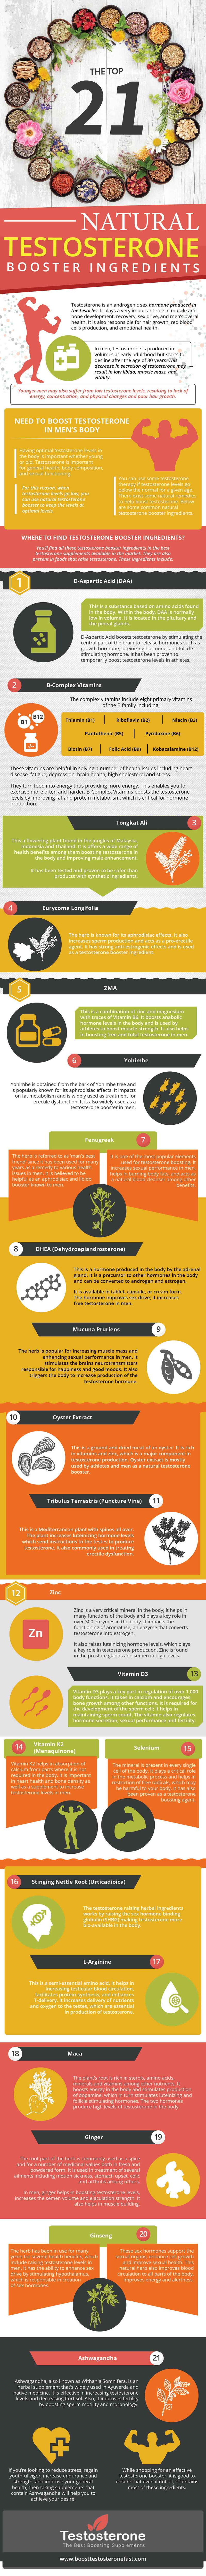 Ingredients That Naturally Boost Testosterone - Infographic